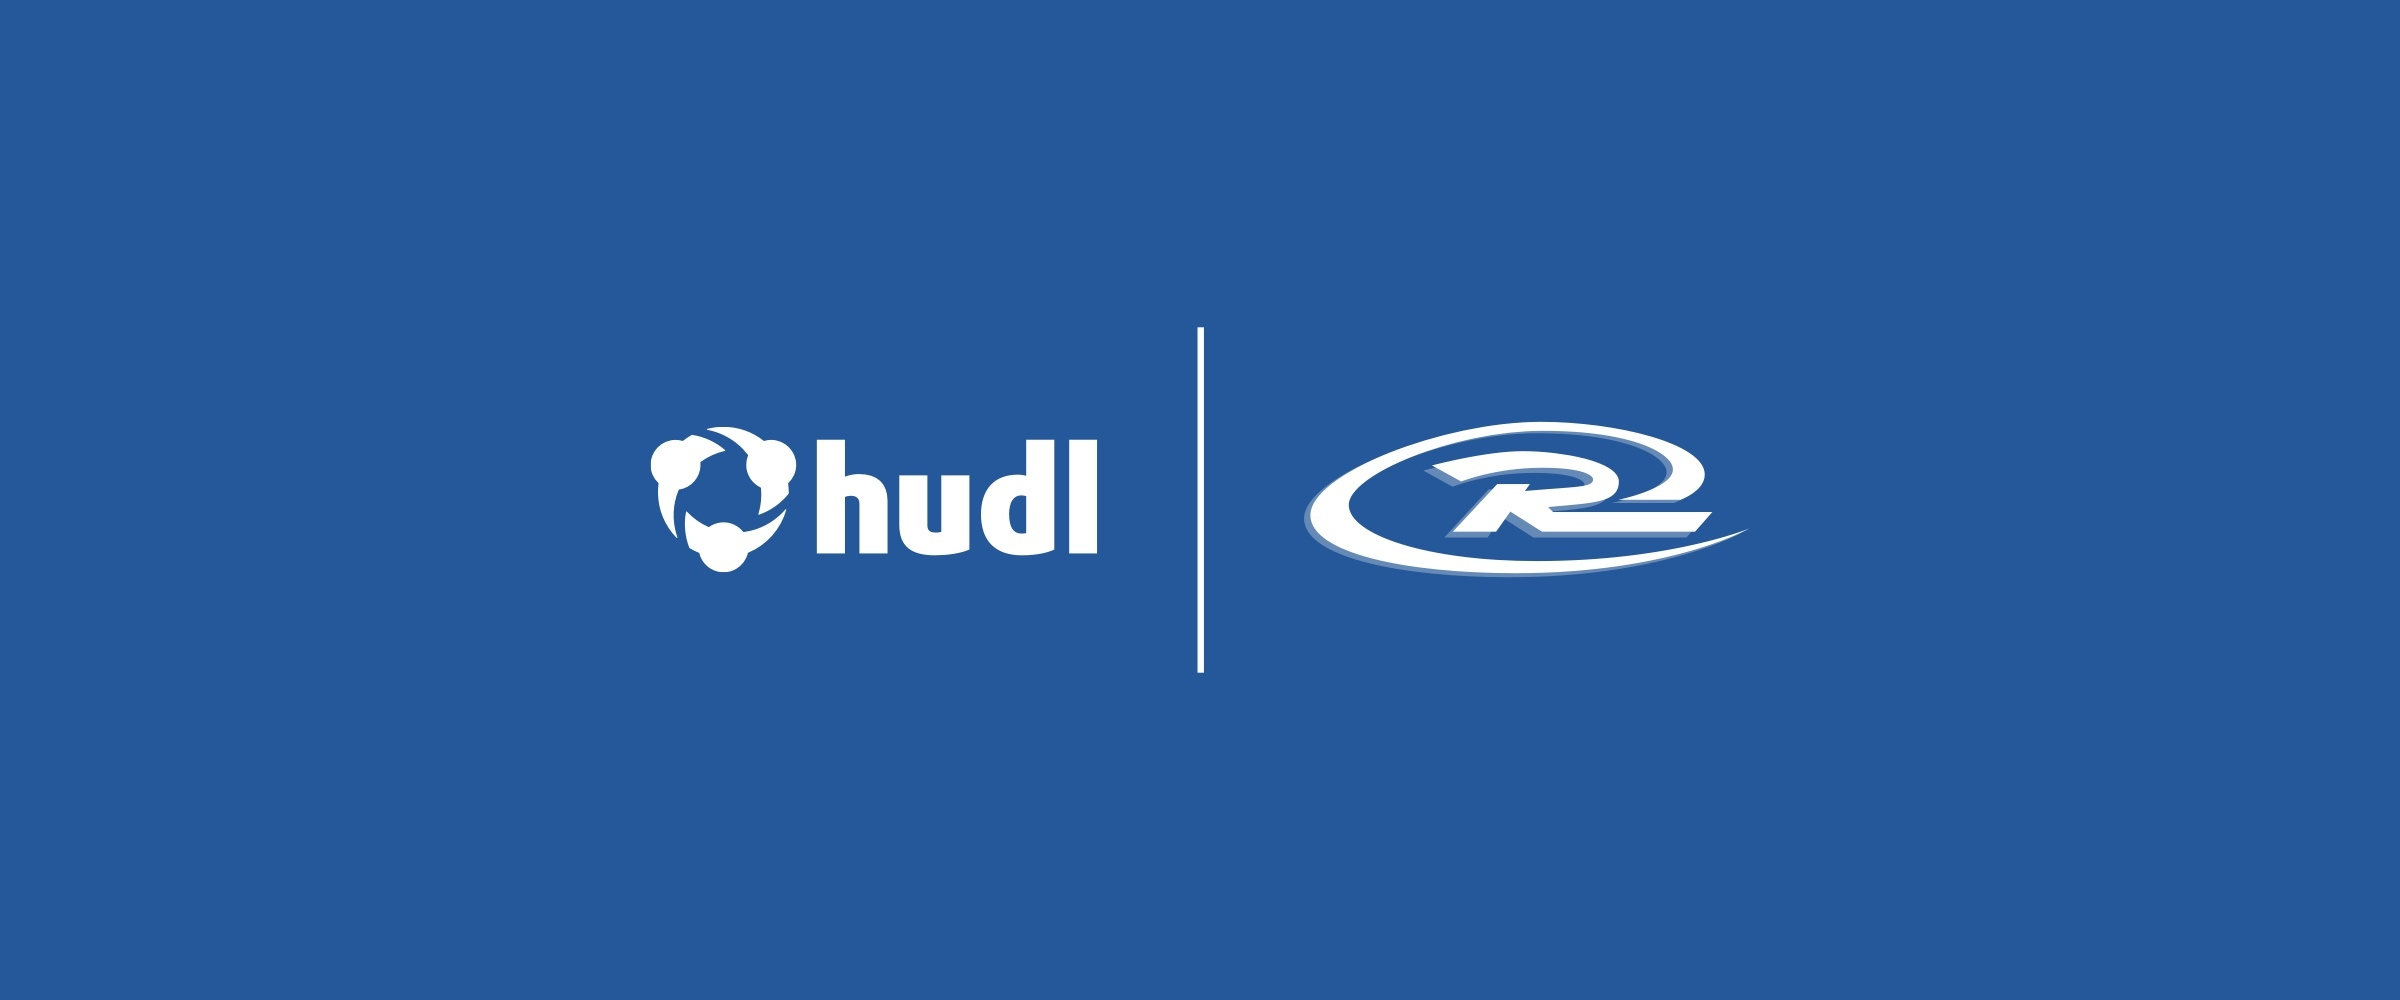 Rush Soccer Partners with Hudl to Add New Technology